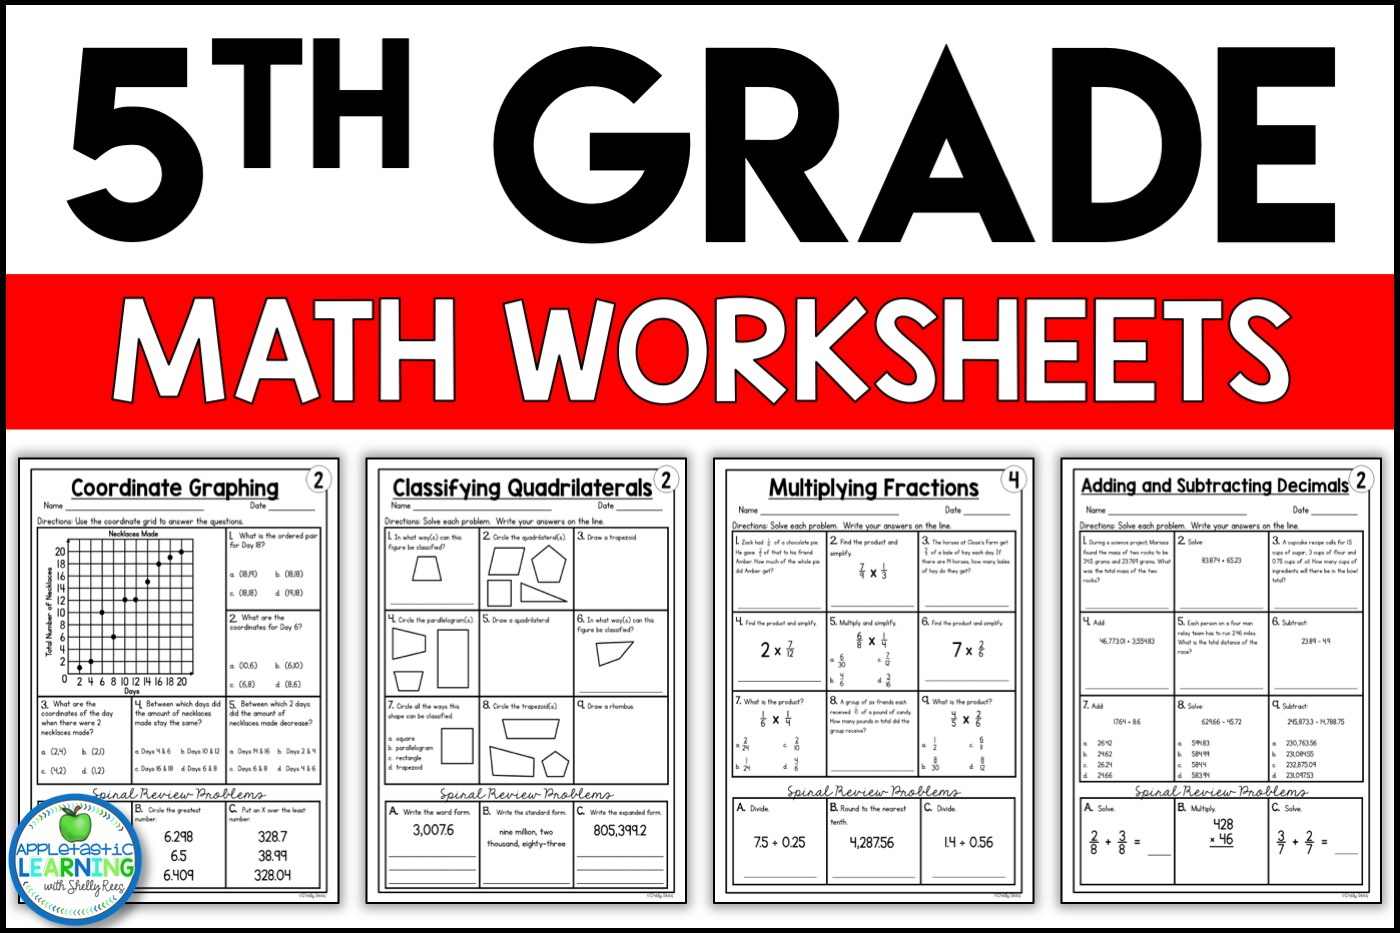 hight resolution of 5th Grade Math Worksheets Free and Printable - Appletastic Learning